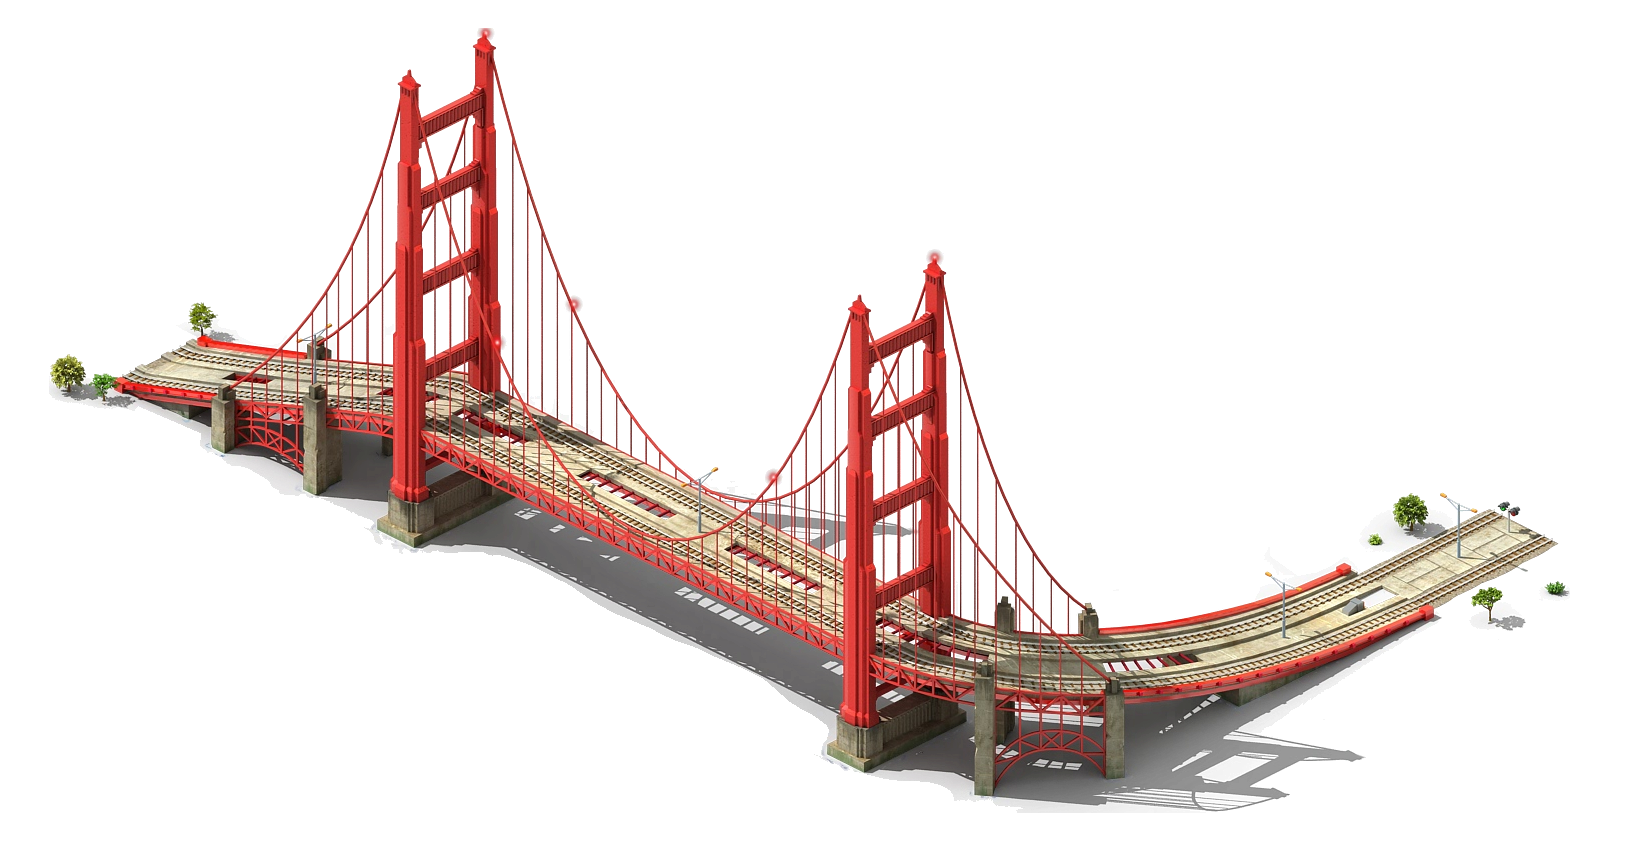 Bridge Free Download PNG Image